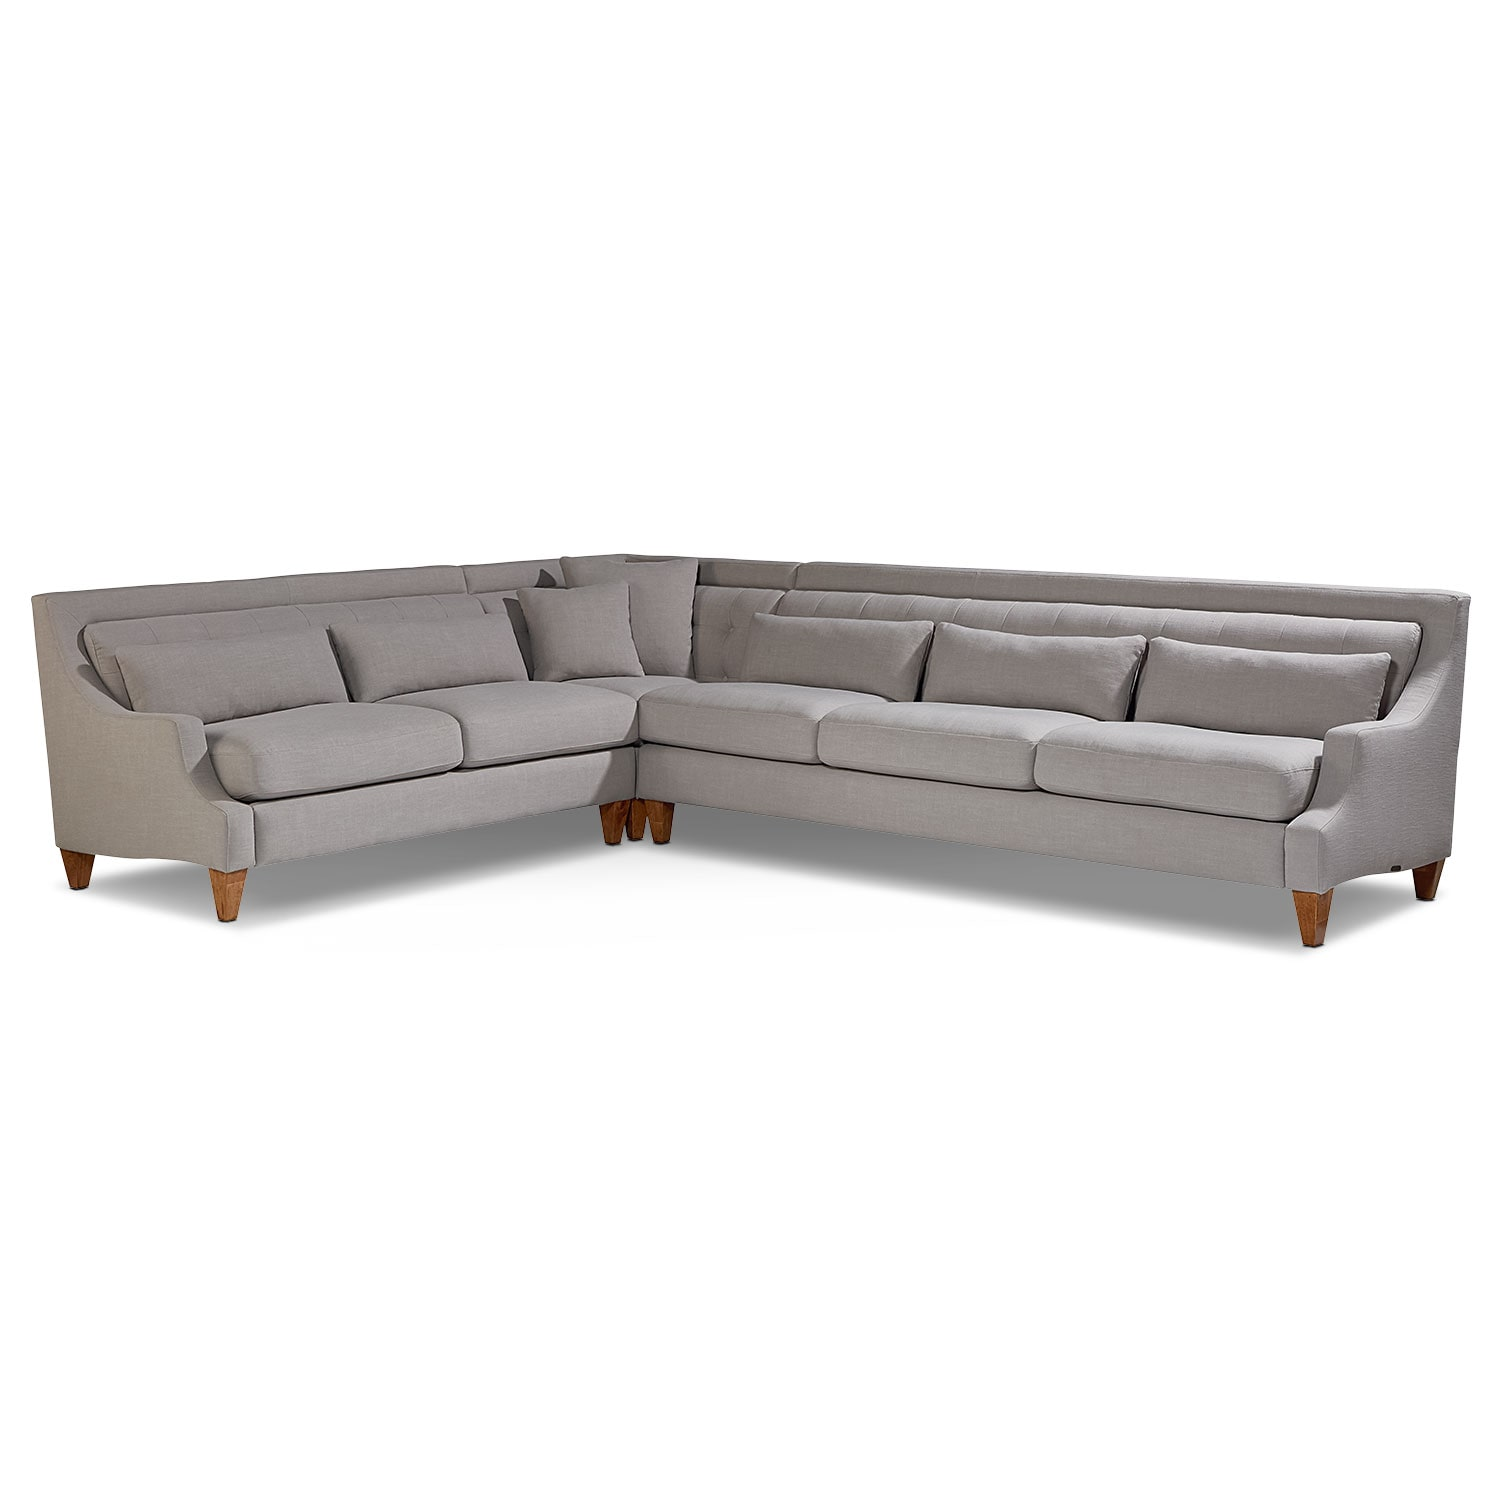 Chisel 3-Piece Sectional - Flannel Gray